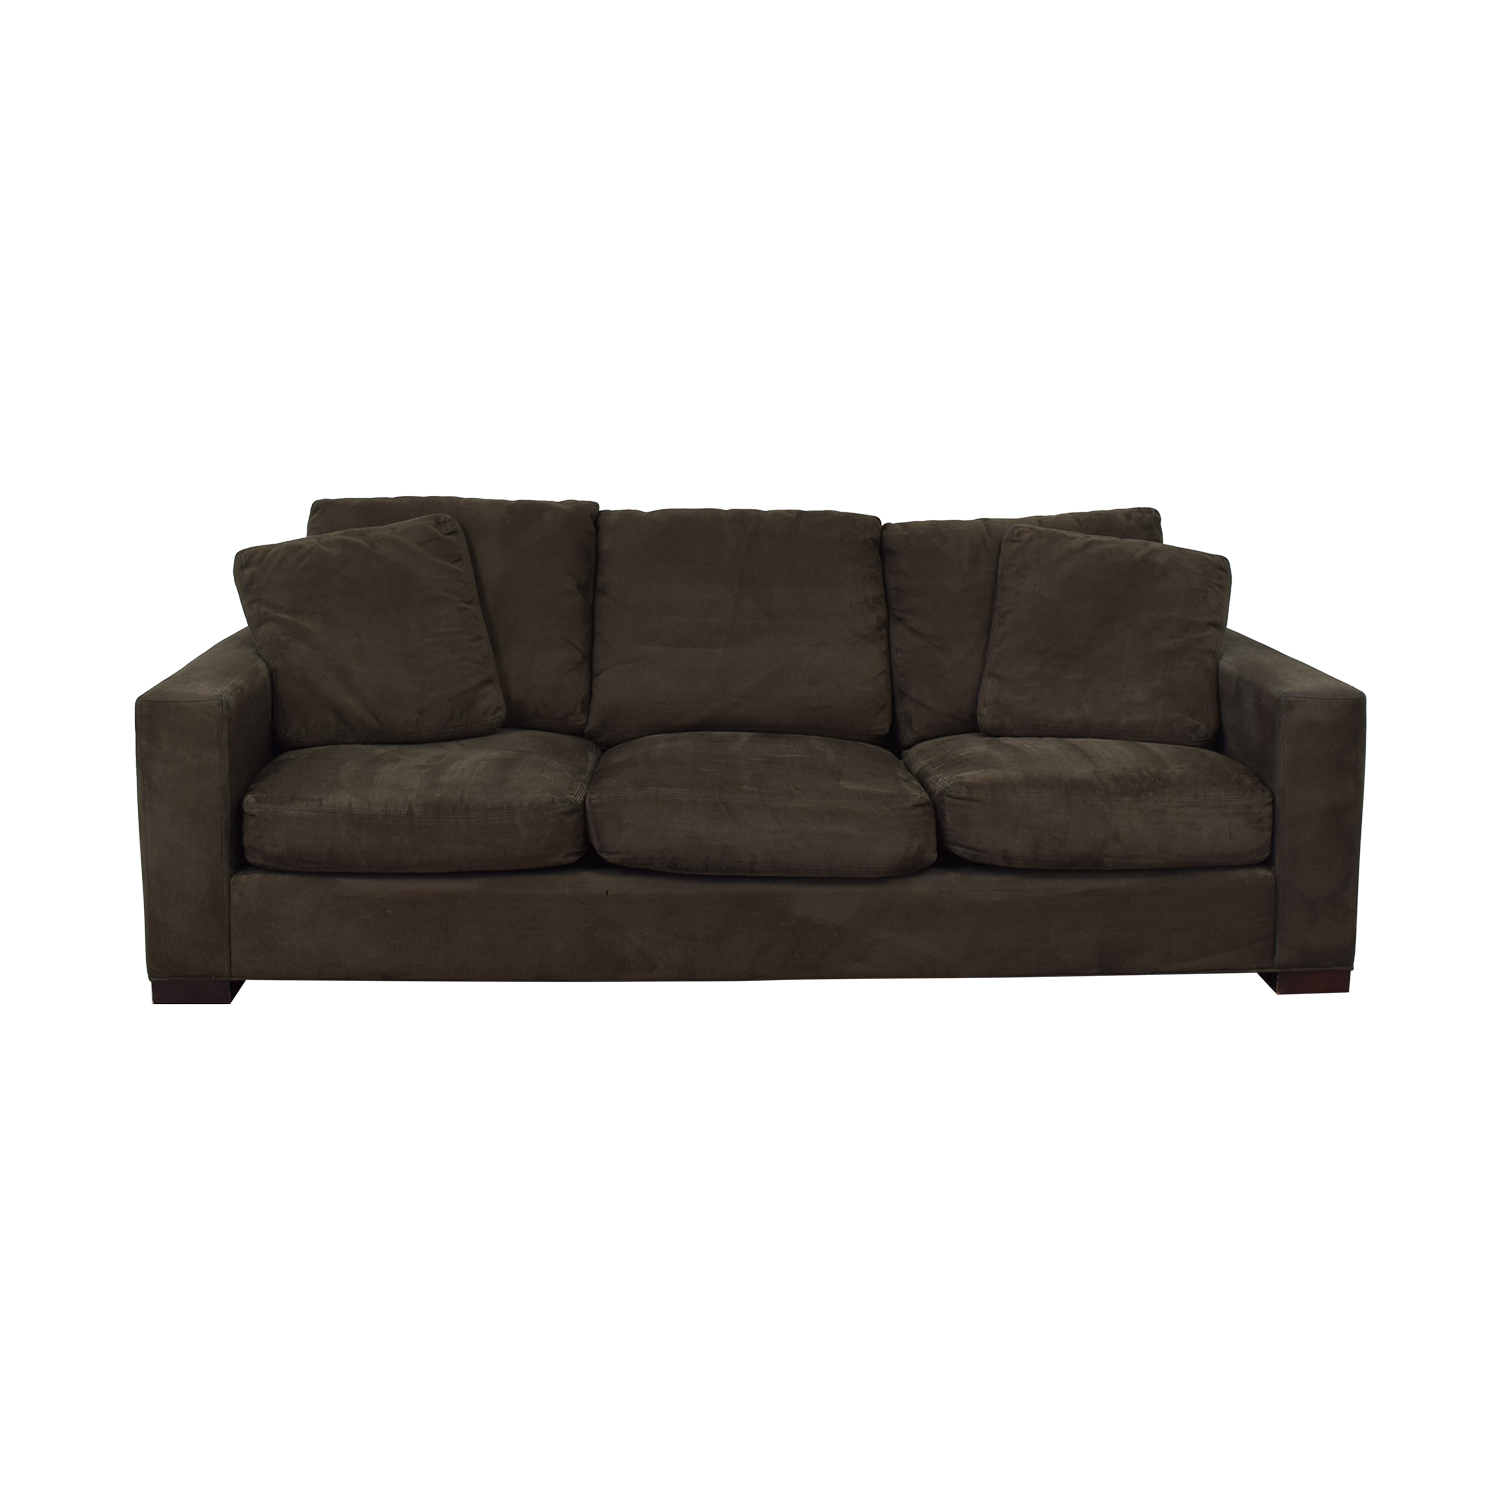 Room & Board Room & Board Dark Grey Micro Suede Sofa